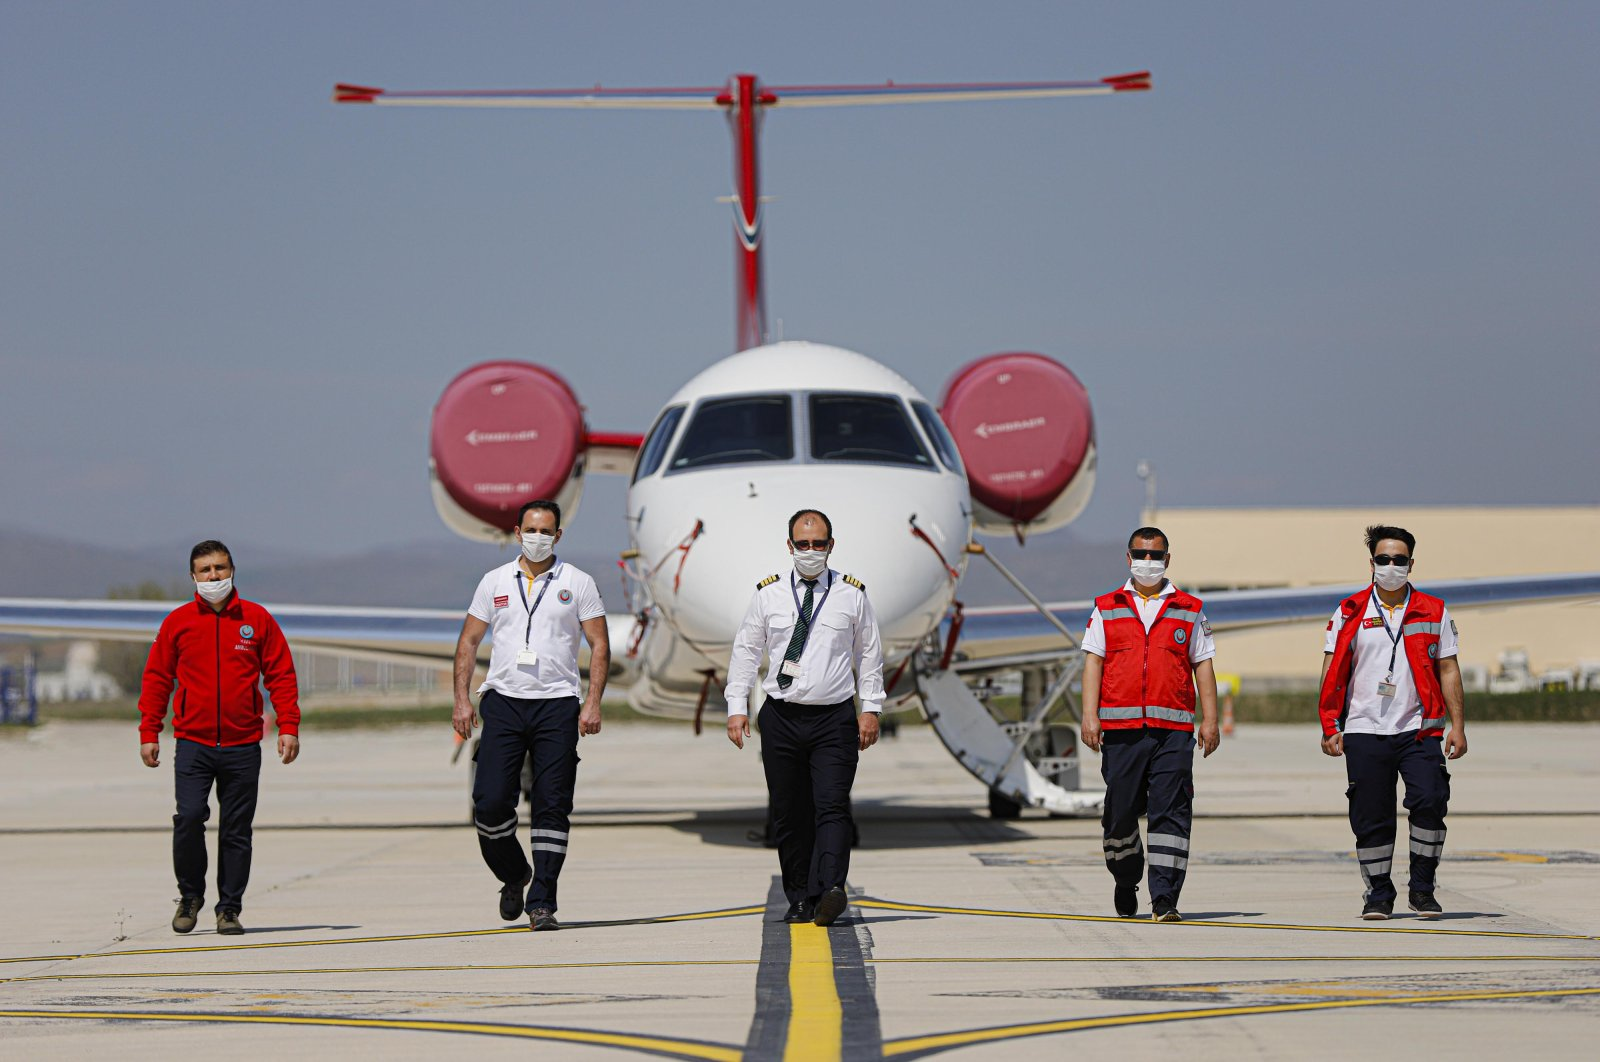 The crew of an air ambulance poses in front of the aircraft, in Ankara, Turkey, April 29, 2020. (DHA Photo)